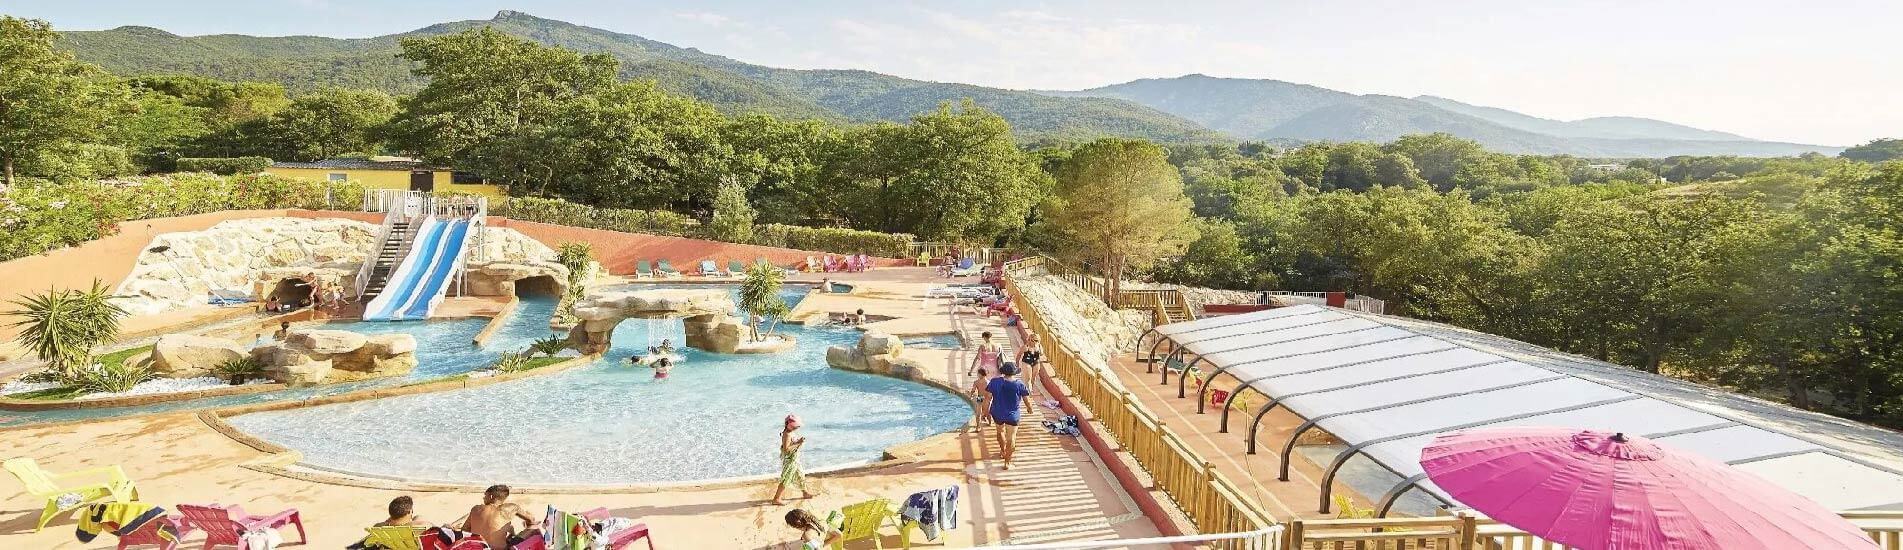 camping les alberes luxe